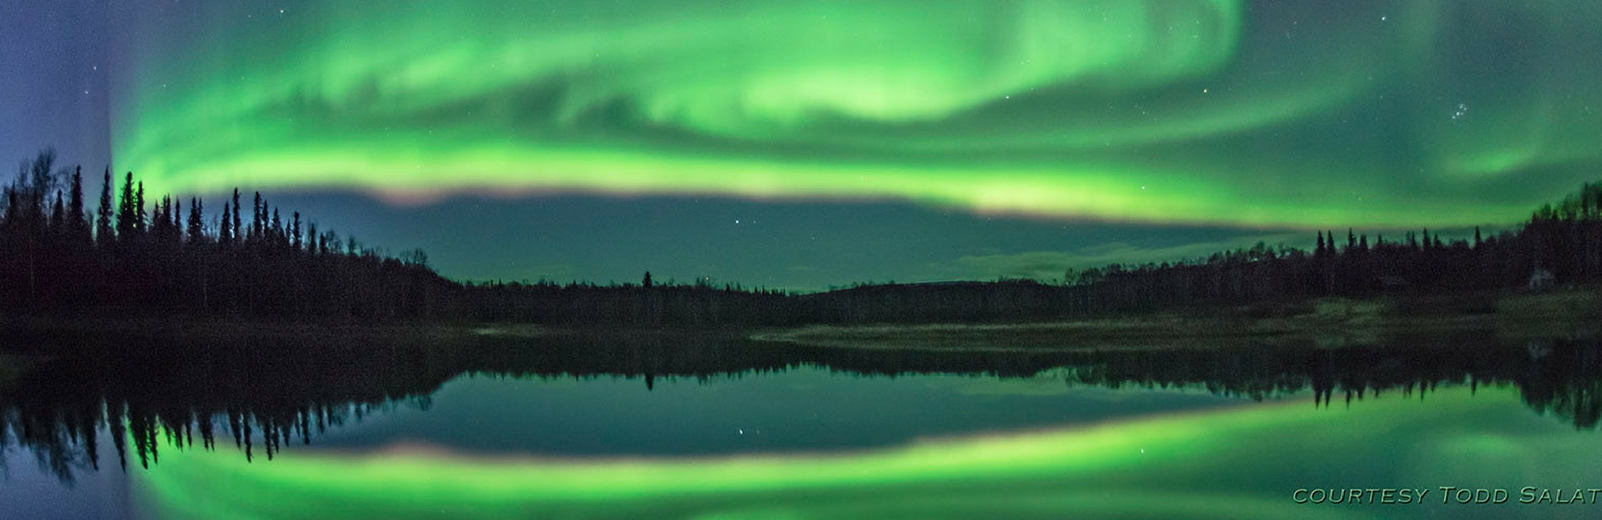 picture of northern lights backdrop